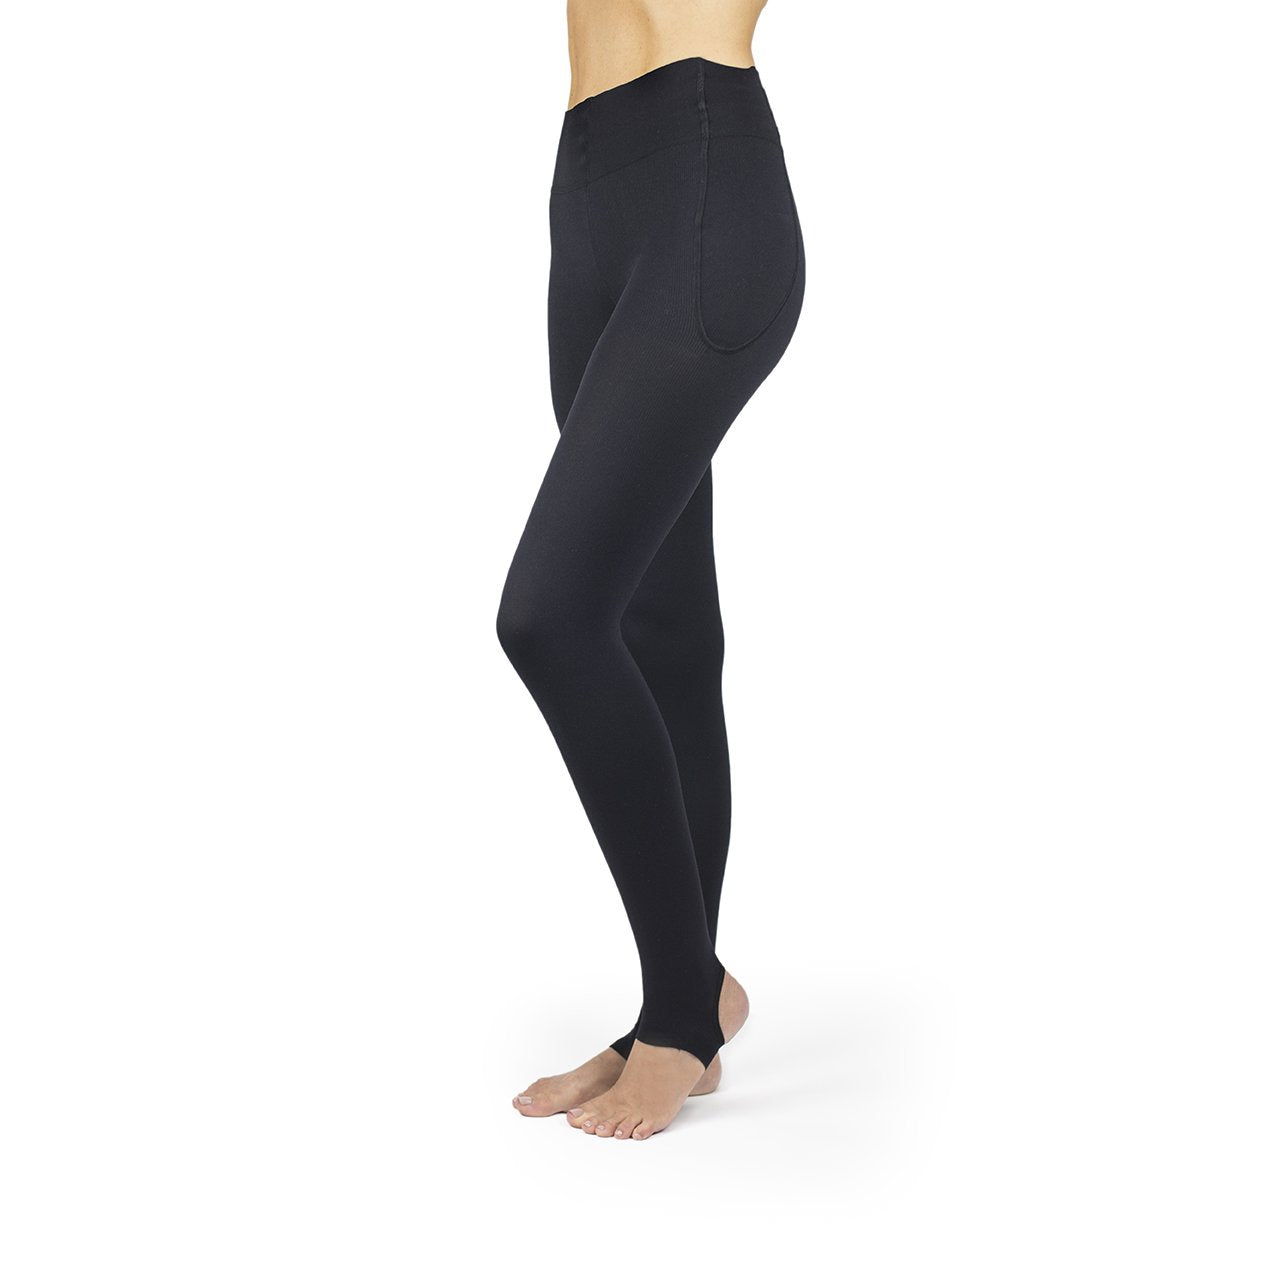 Rejuva Stirrup Compression Leggings 15-20 mmHg